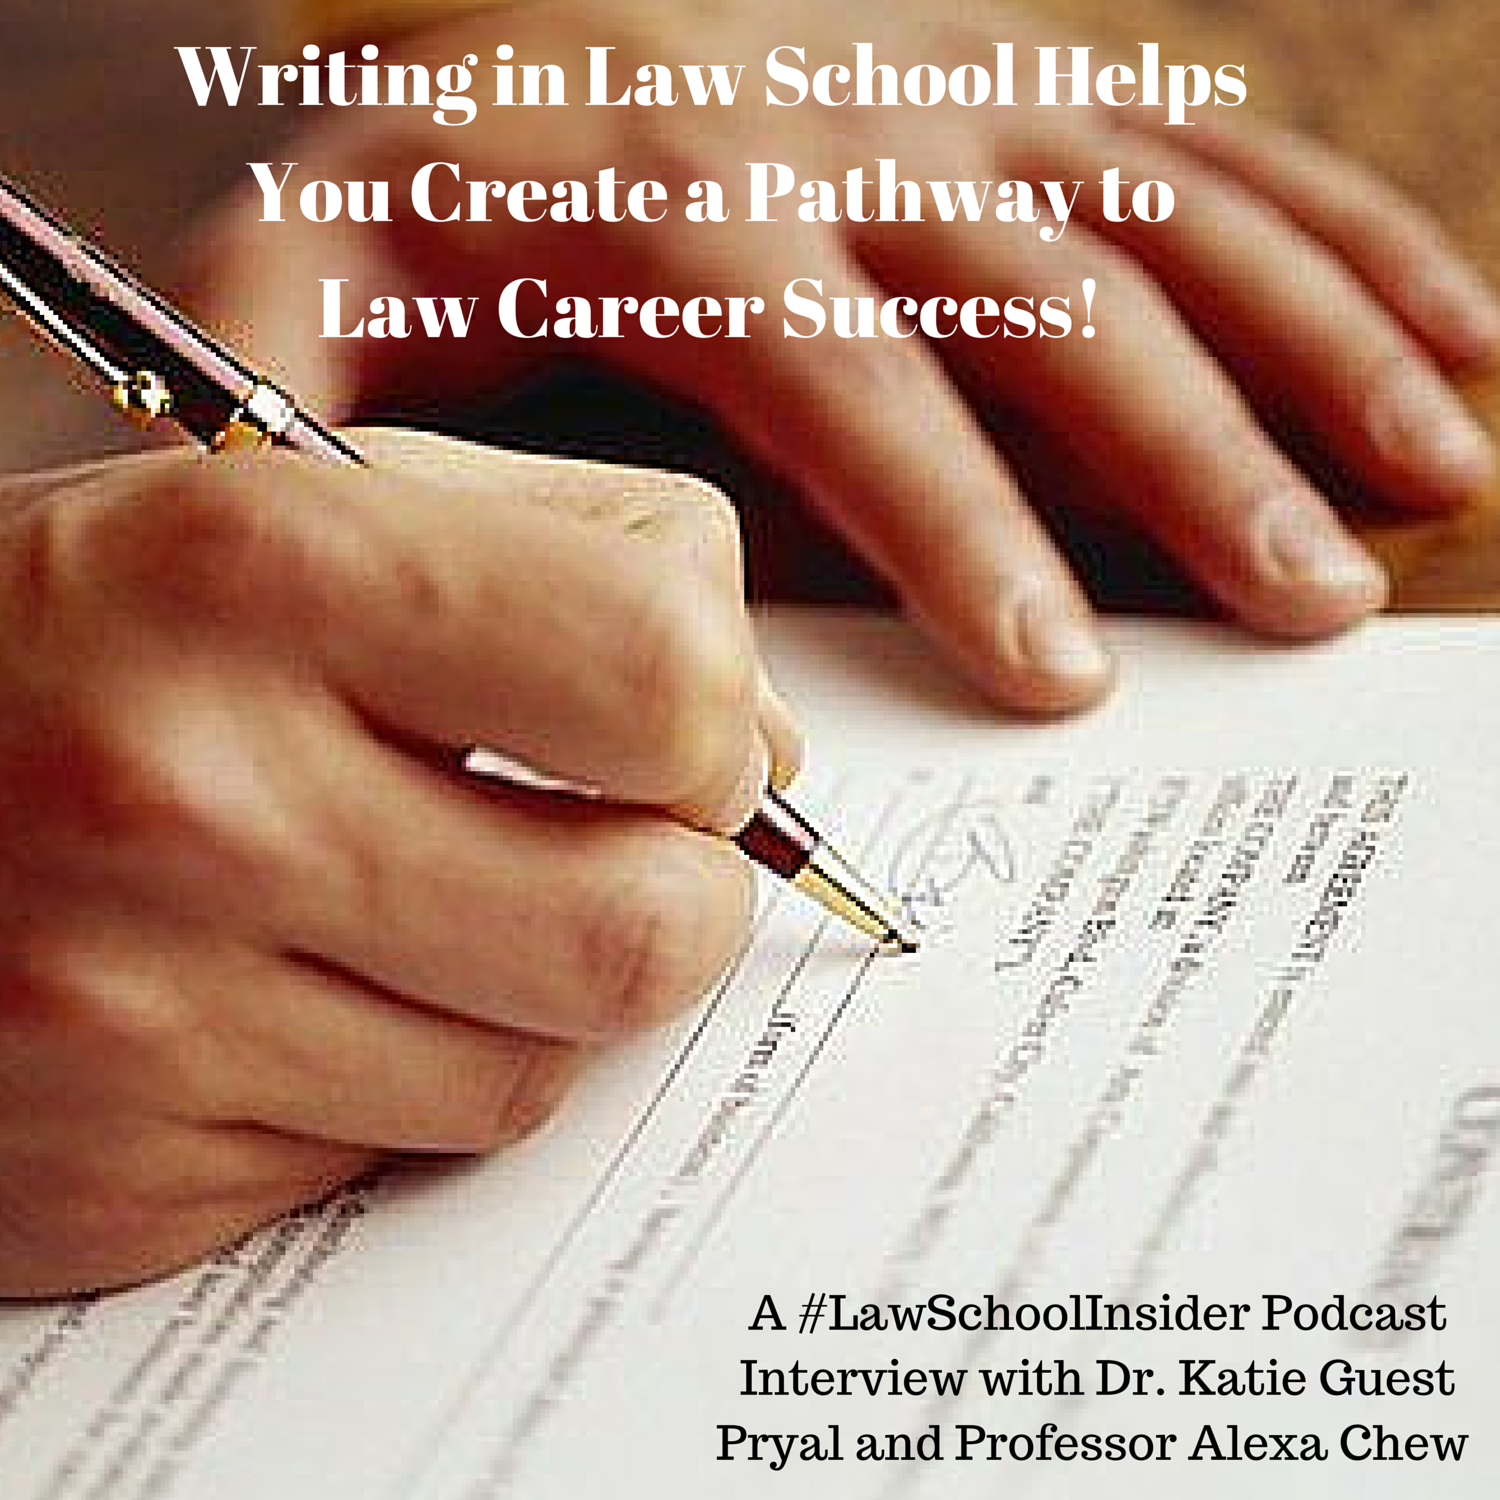 Writing_in_Law_School_Helps_You_Create_a_Pathway_to_Law_Career_Success.png